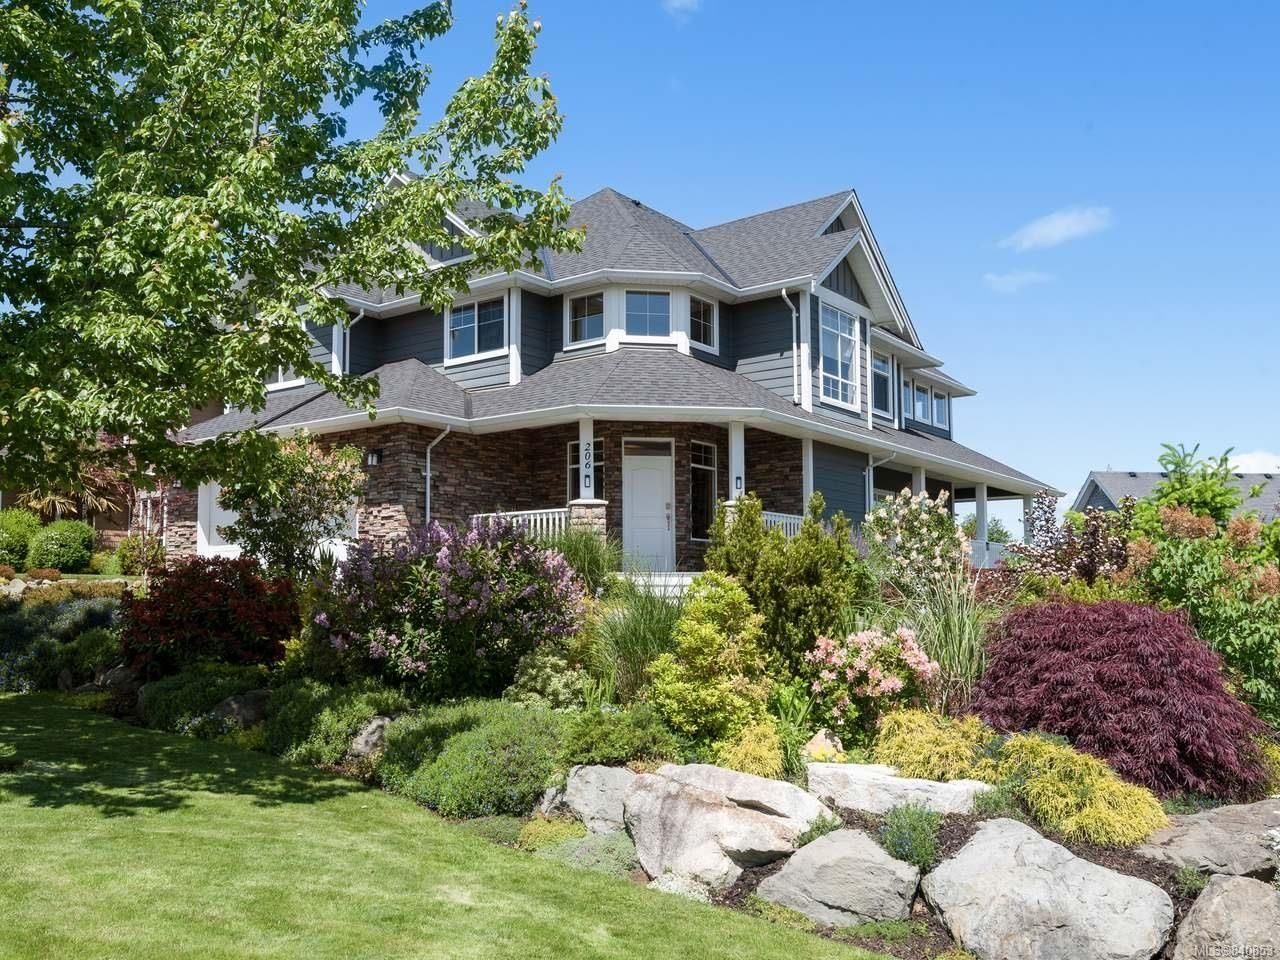 Photo 3: Photos: 206 Marie Pl in CAMPBELL RIVER: CR Willow Point House for sale (Campbell River)  : MLS®# 840853